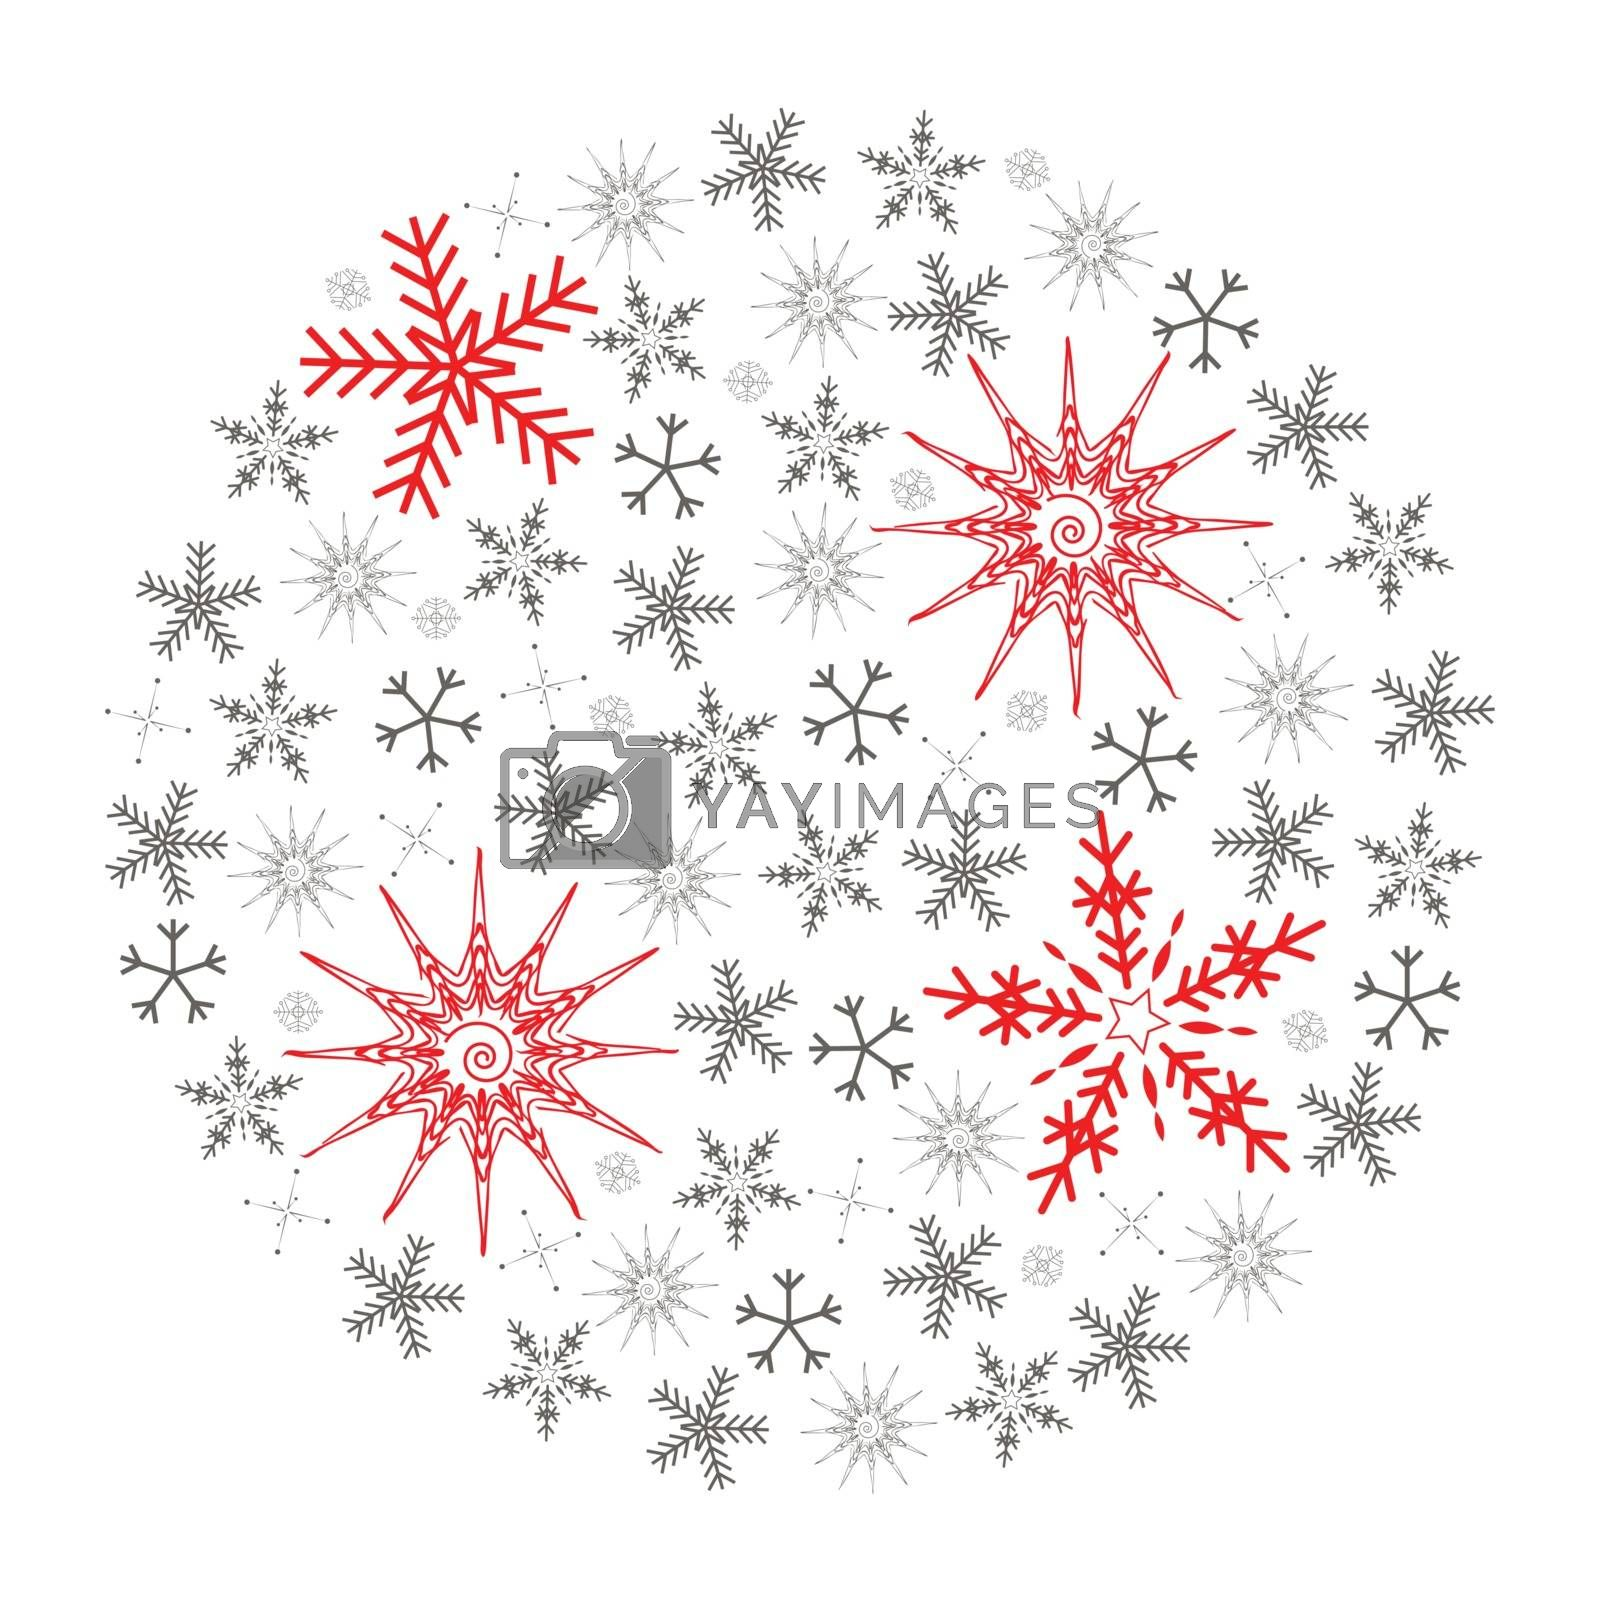 Illustration of Christmas snowflake isolated on white background. Full of small gray and four big red snowflakes